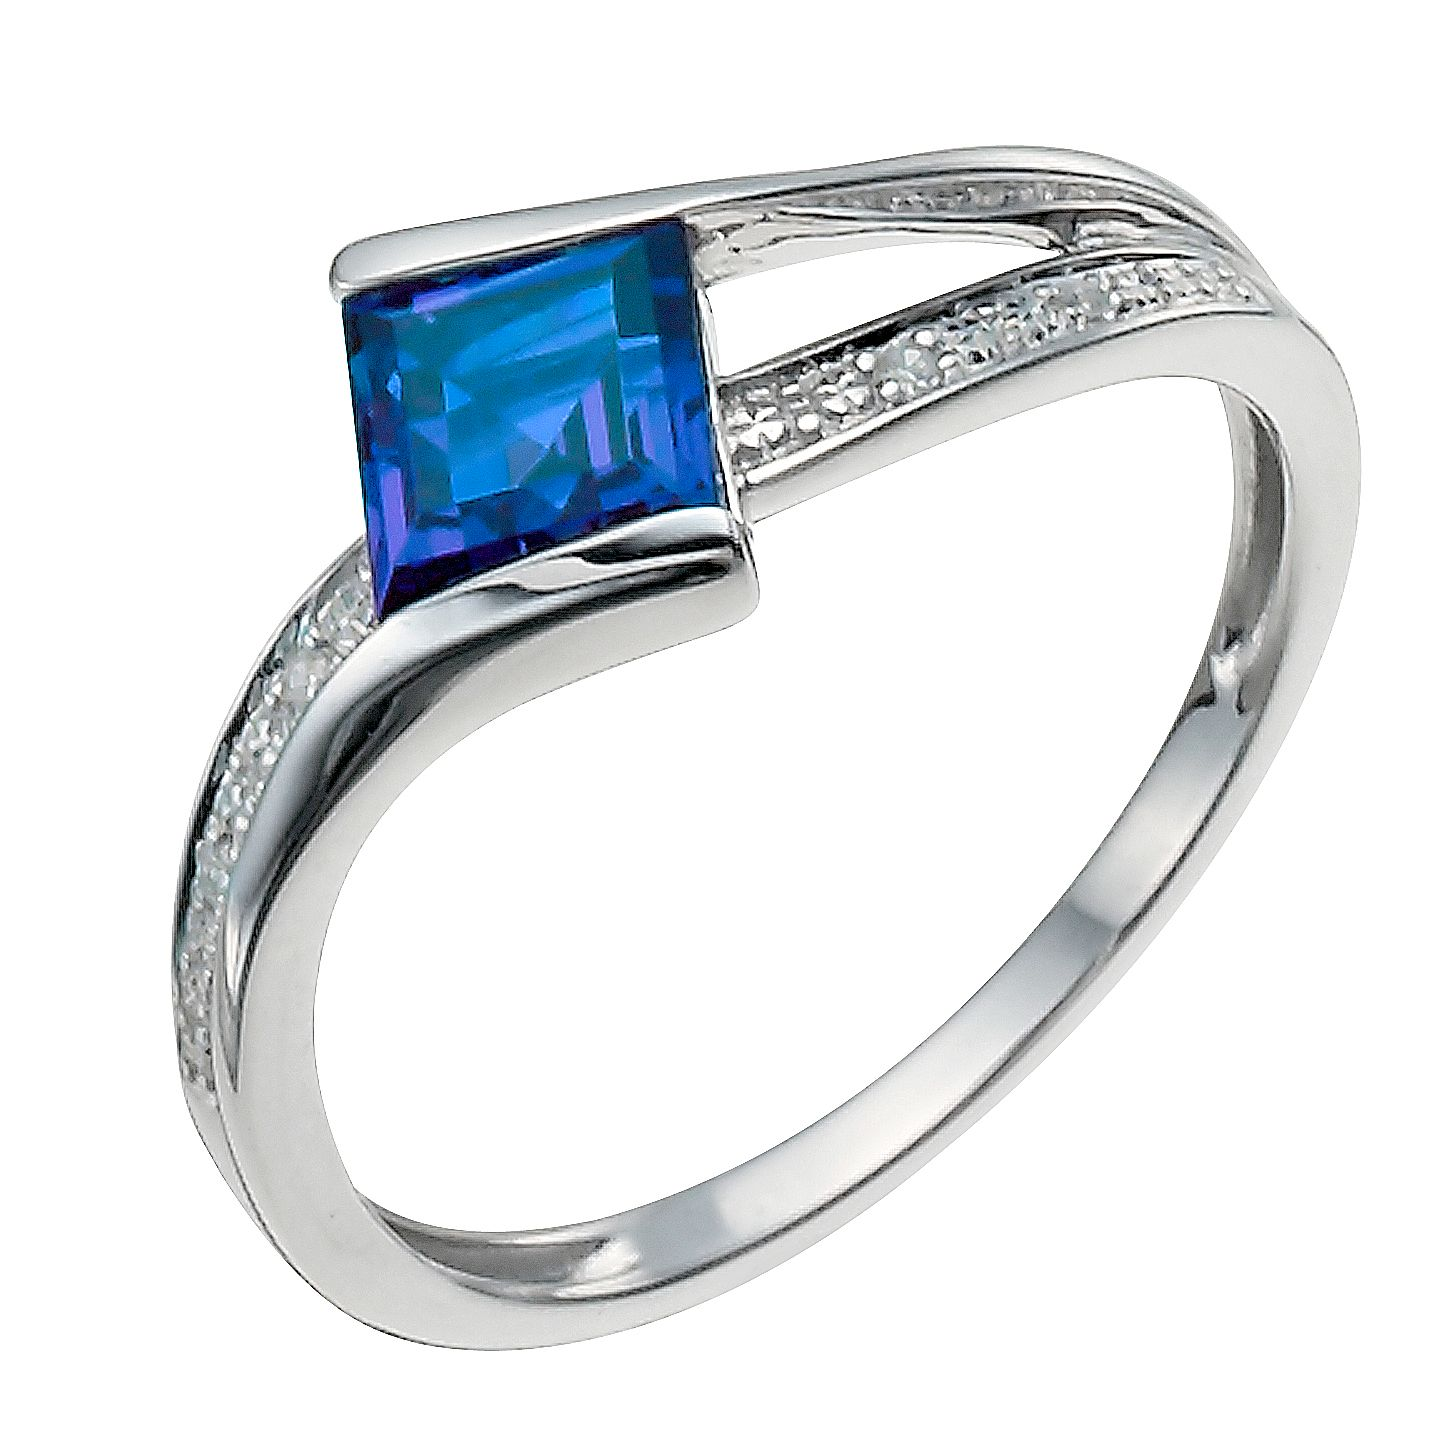 rings carat products ring sapphire twig em saffire rosemary mod back wh engagement radiant kristin white sapp cut